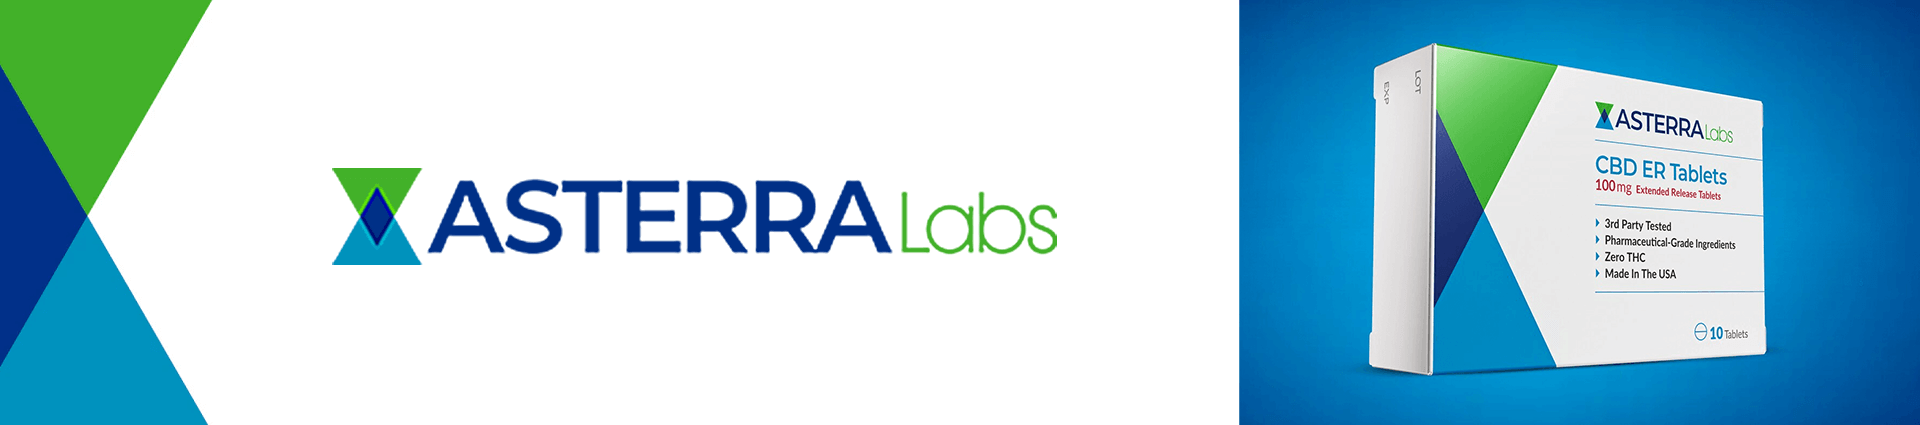 Asterra Labs CBD Tablets Extended Release